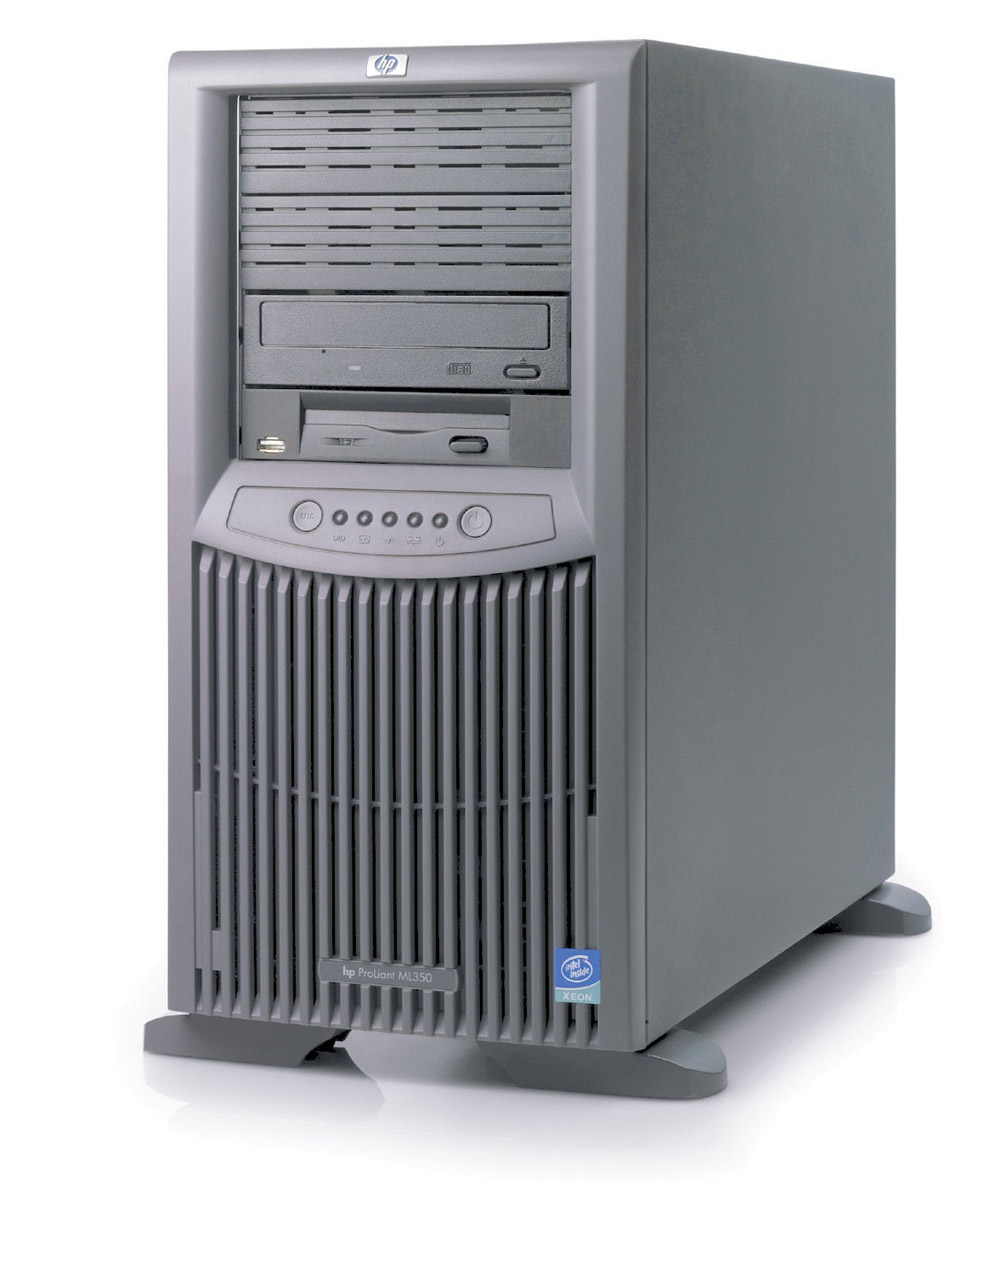 Сервер HP ProLiant ML350 G4p Server Tower XeonDP-3.0/2Mb/800MHz,   1Gb PC2-3200/400MHz, Ultra320-SCSI (max. 6x300Gb+2x300Gb), SA641, HotPlug, 6/6 PCI, CD, FDD, Gigabit NIC